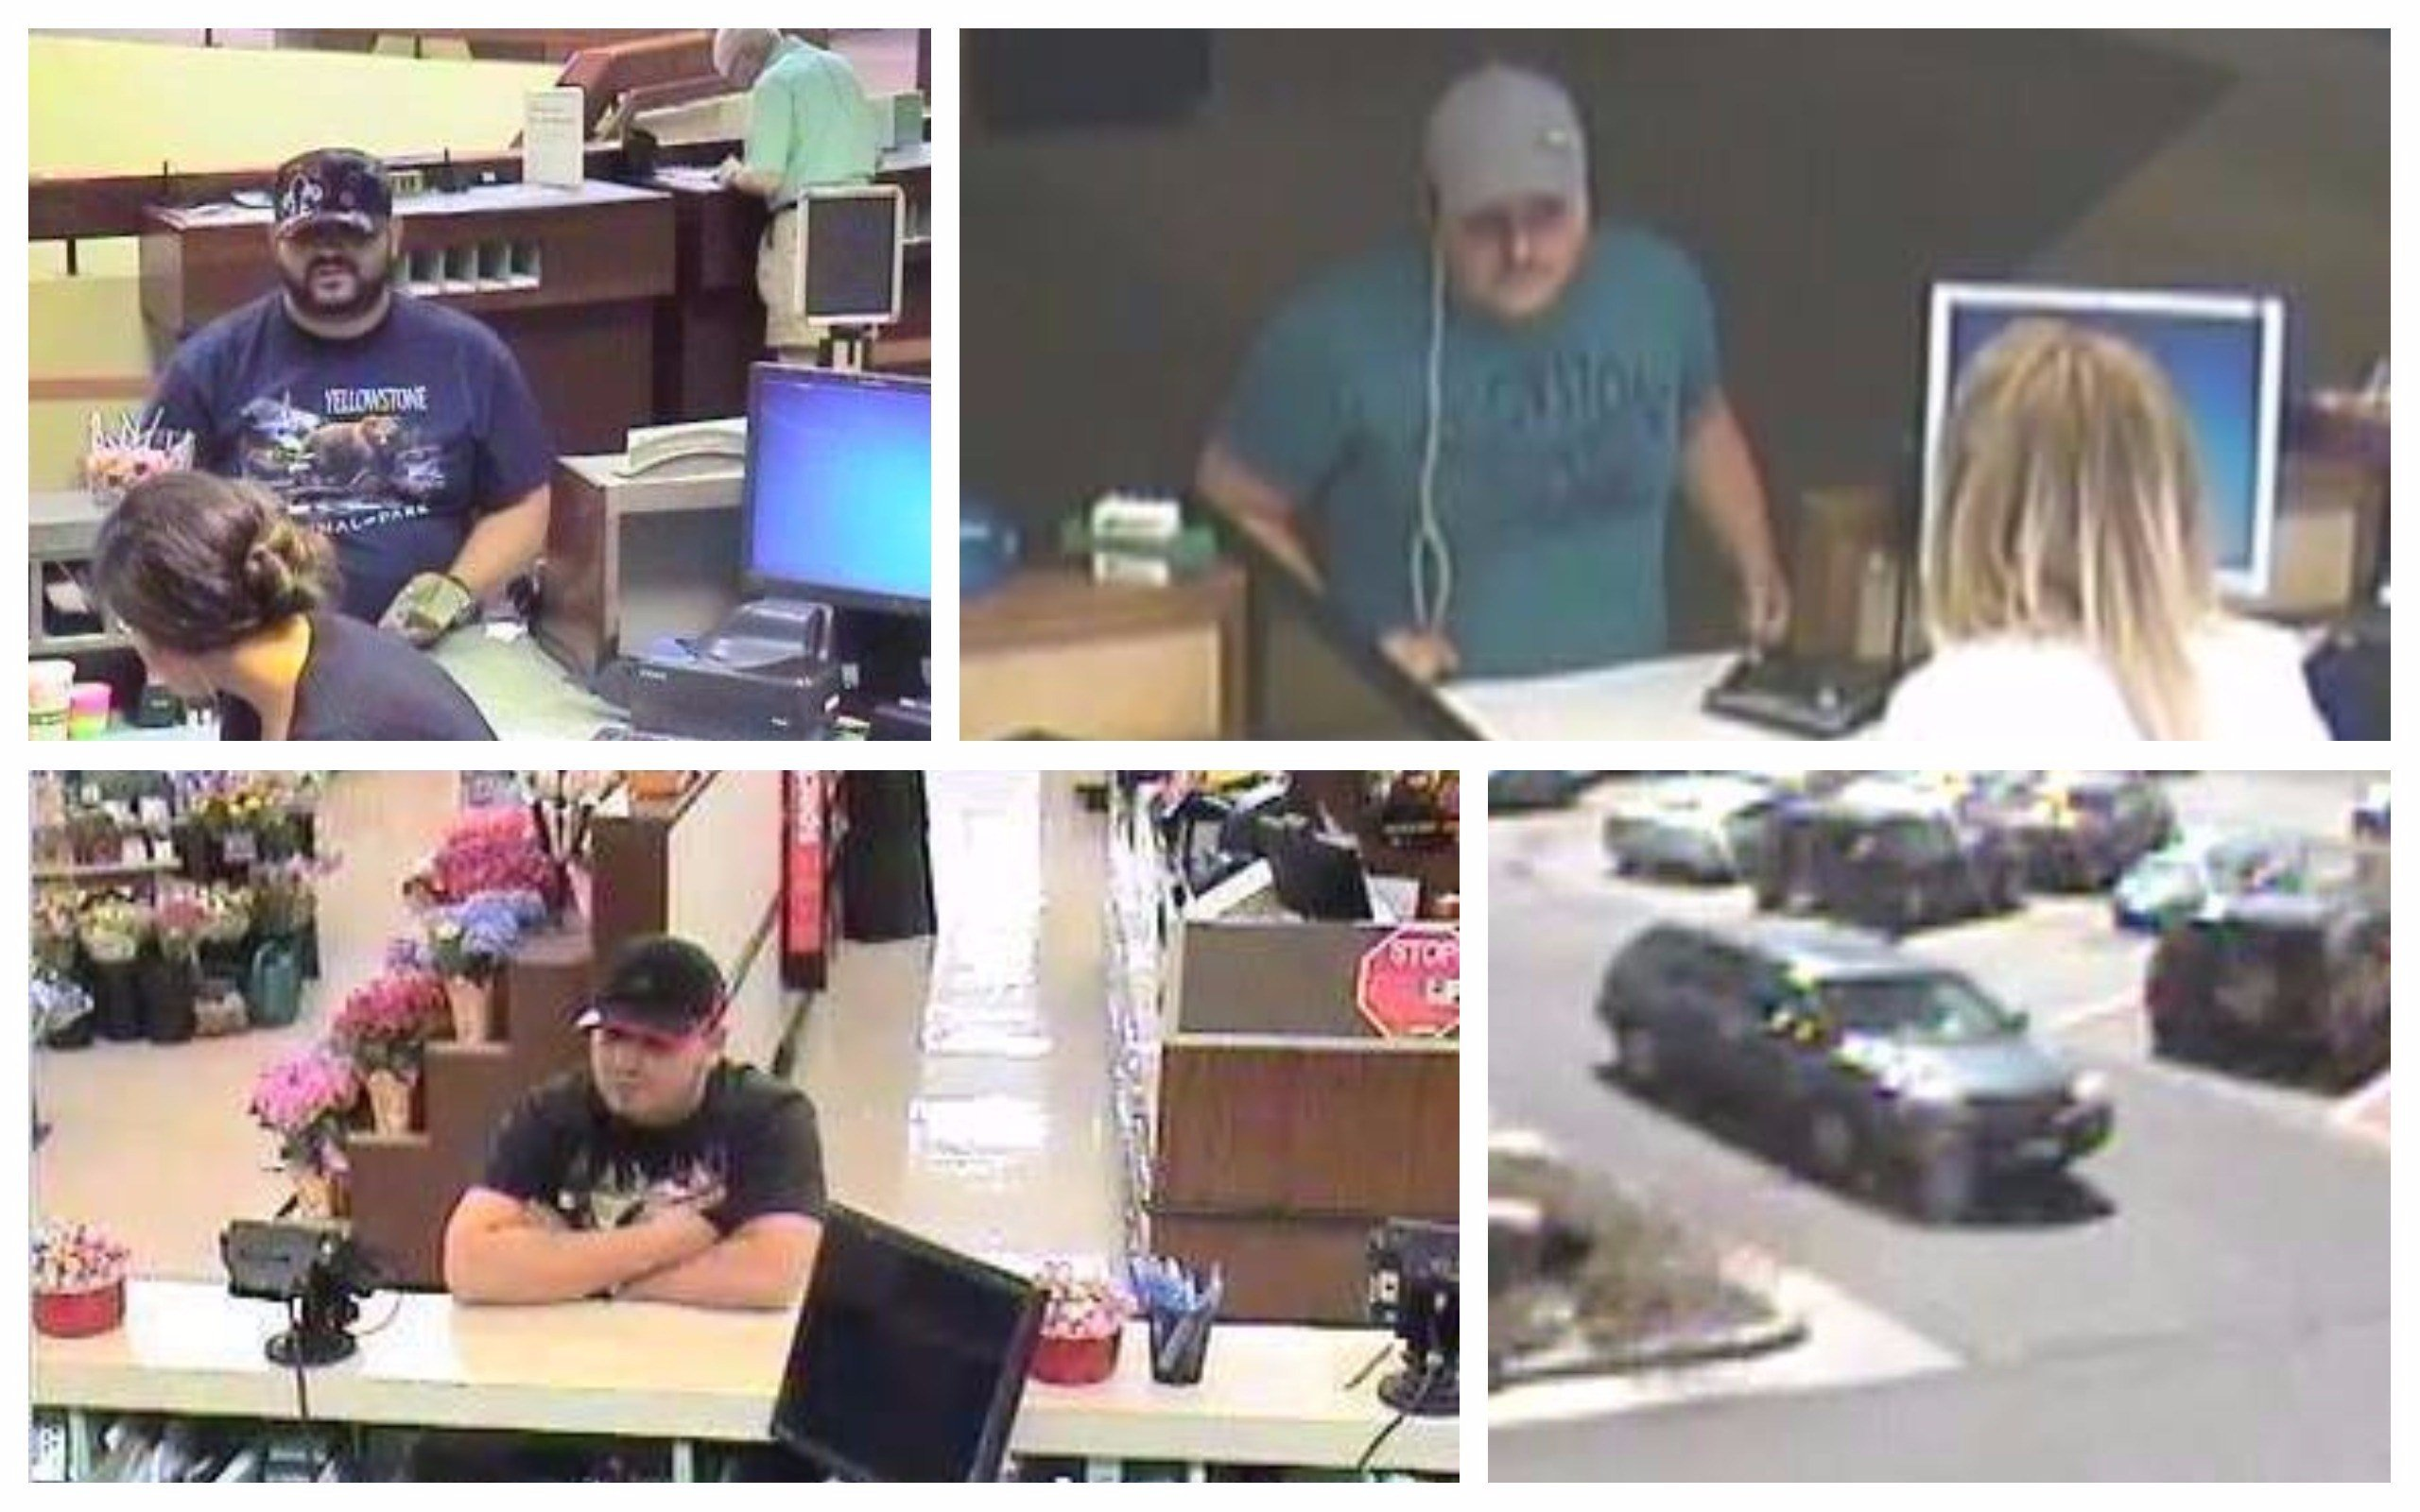 The suspects got away with $7,500 (Cody Police Department)